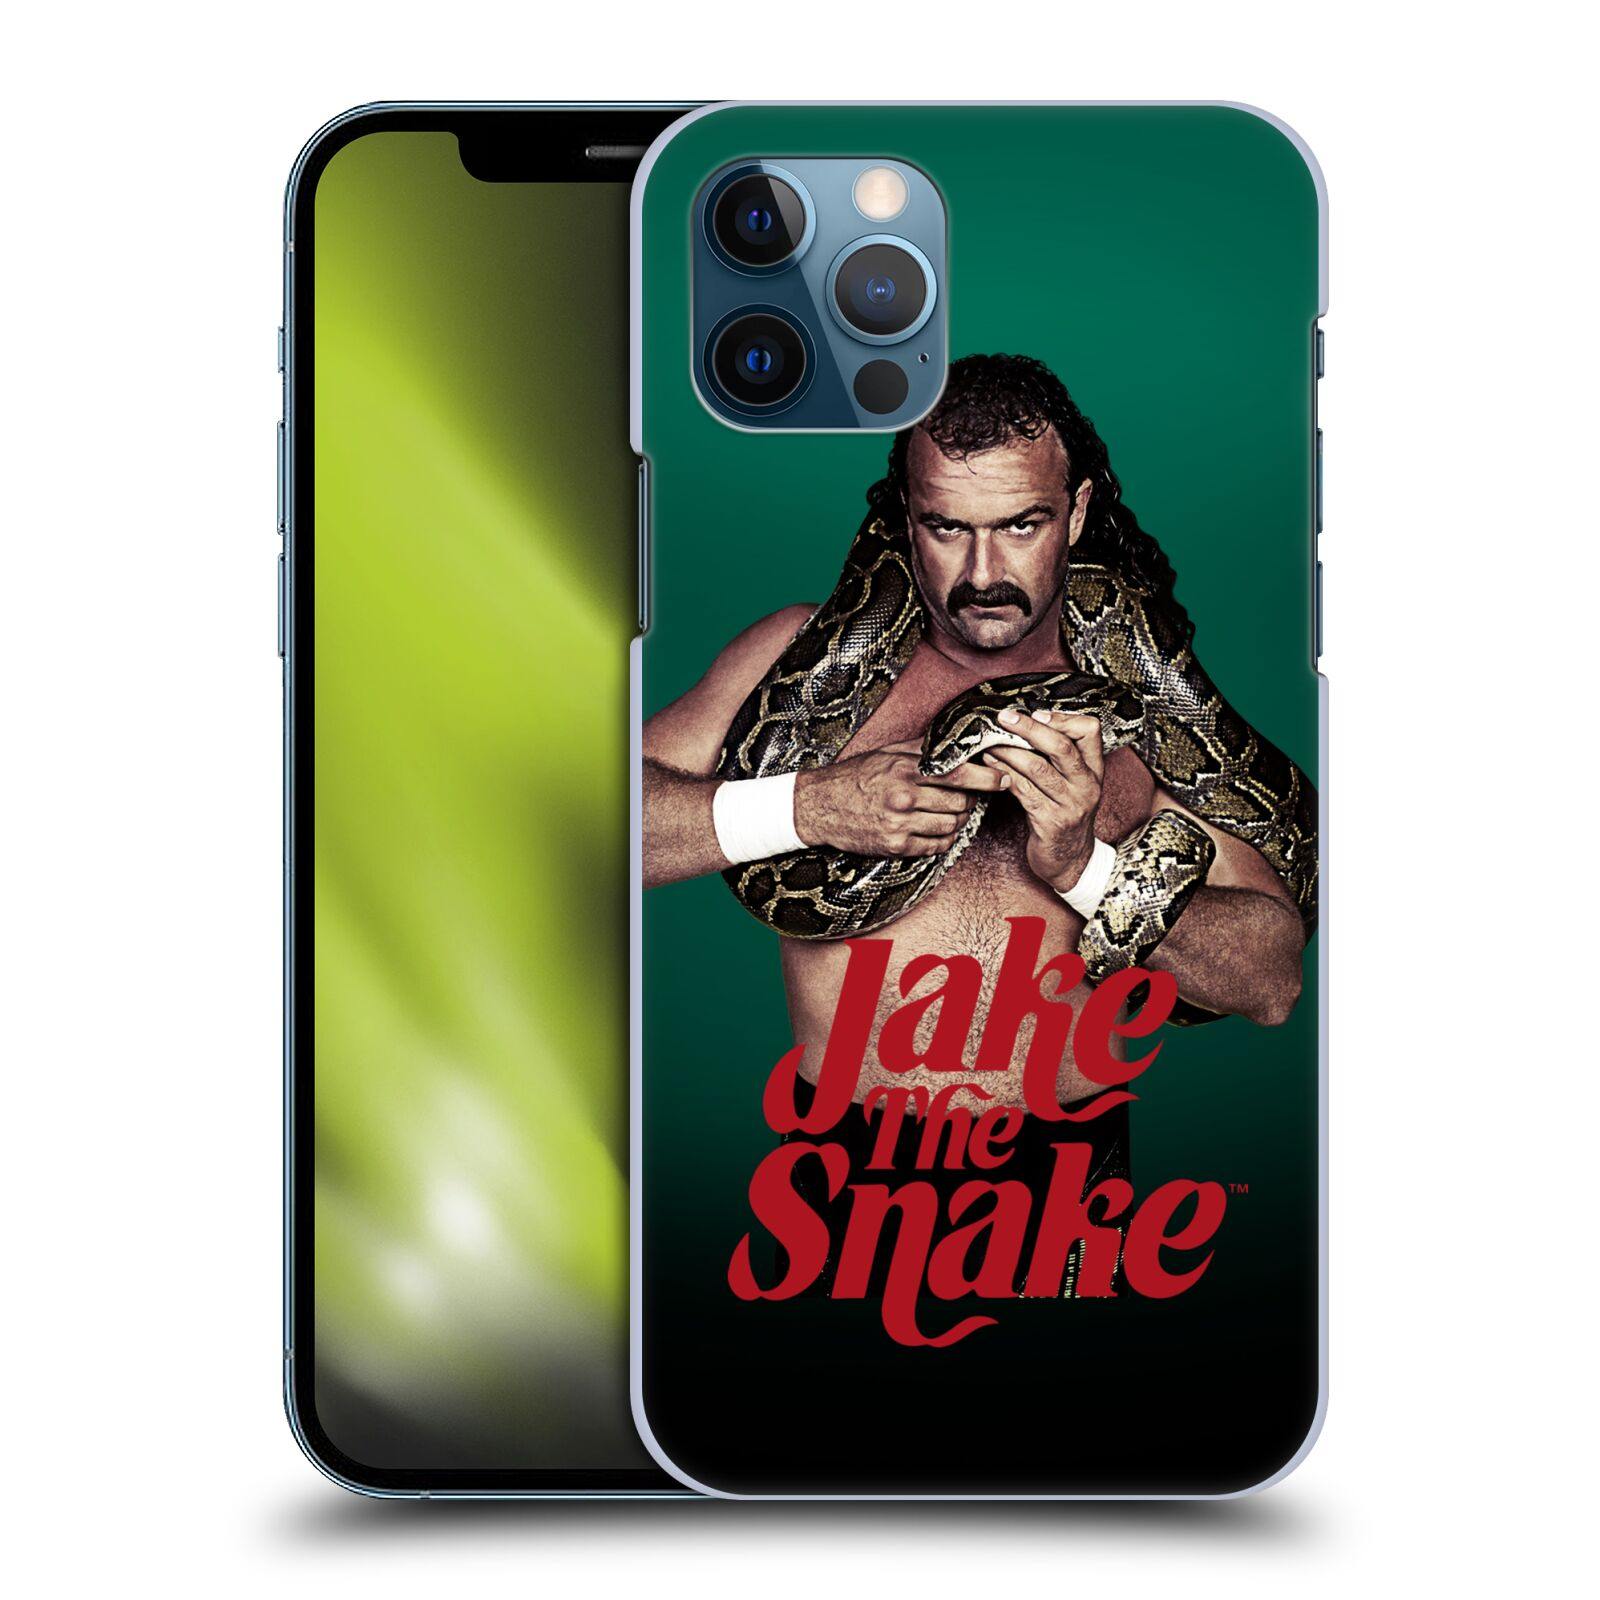 Offizielle WWE Jake The Snake Roberts Profilbild Hülle für Apple iPhone 12 / iPhone 12 Pro